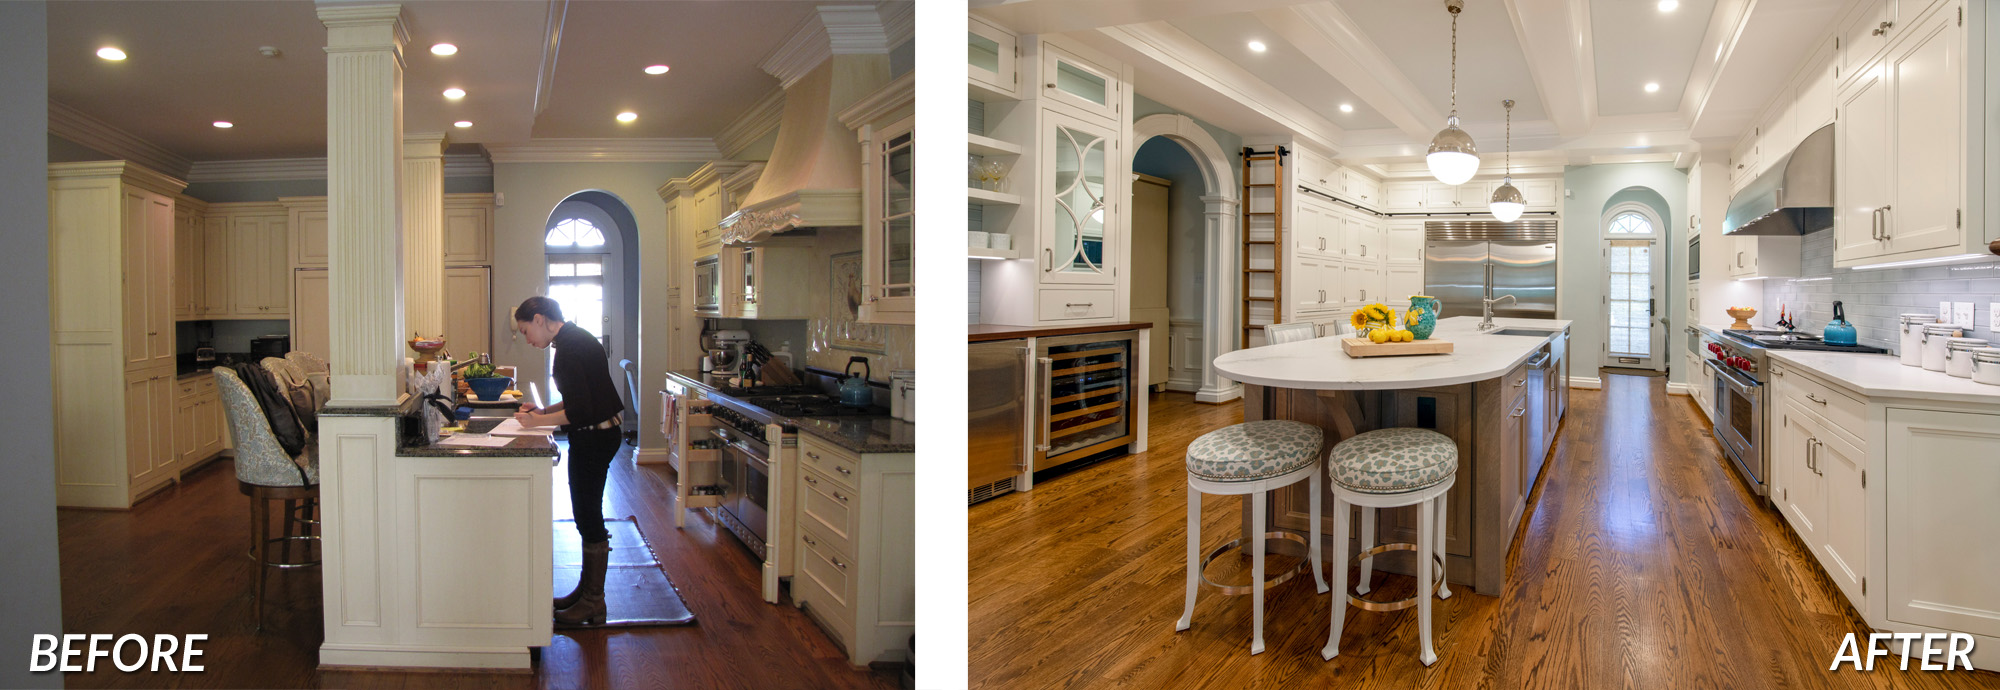 BOWA Design Design Build - Chevy Chase Kitchen Renovation Before & After